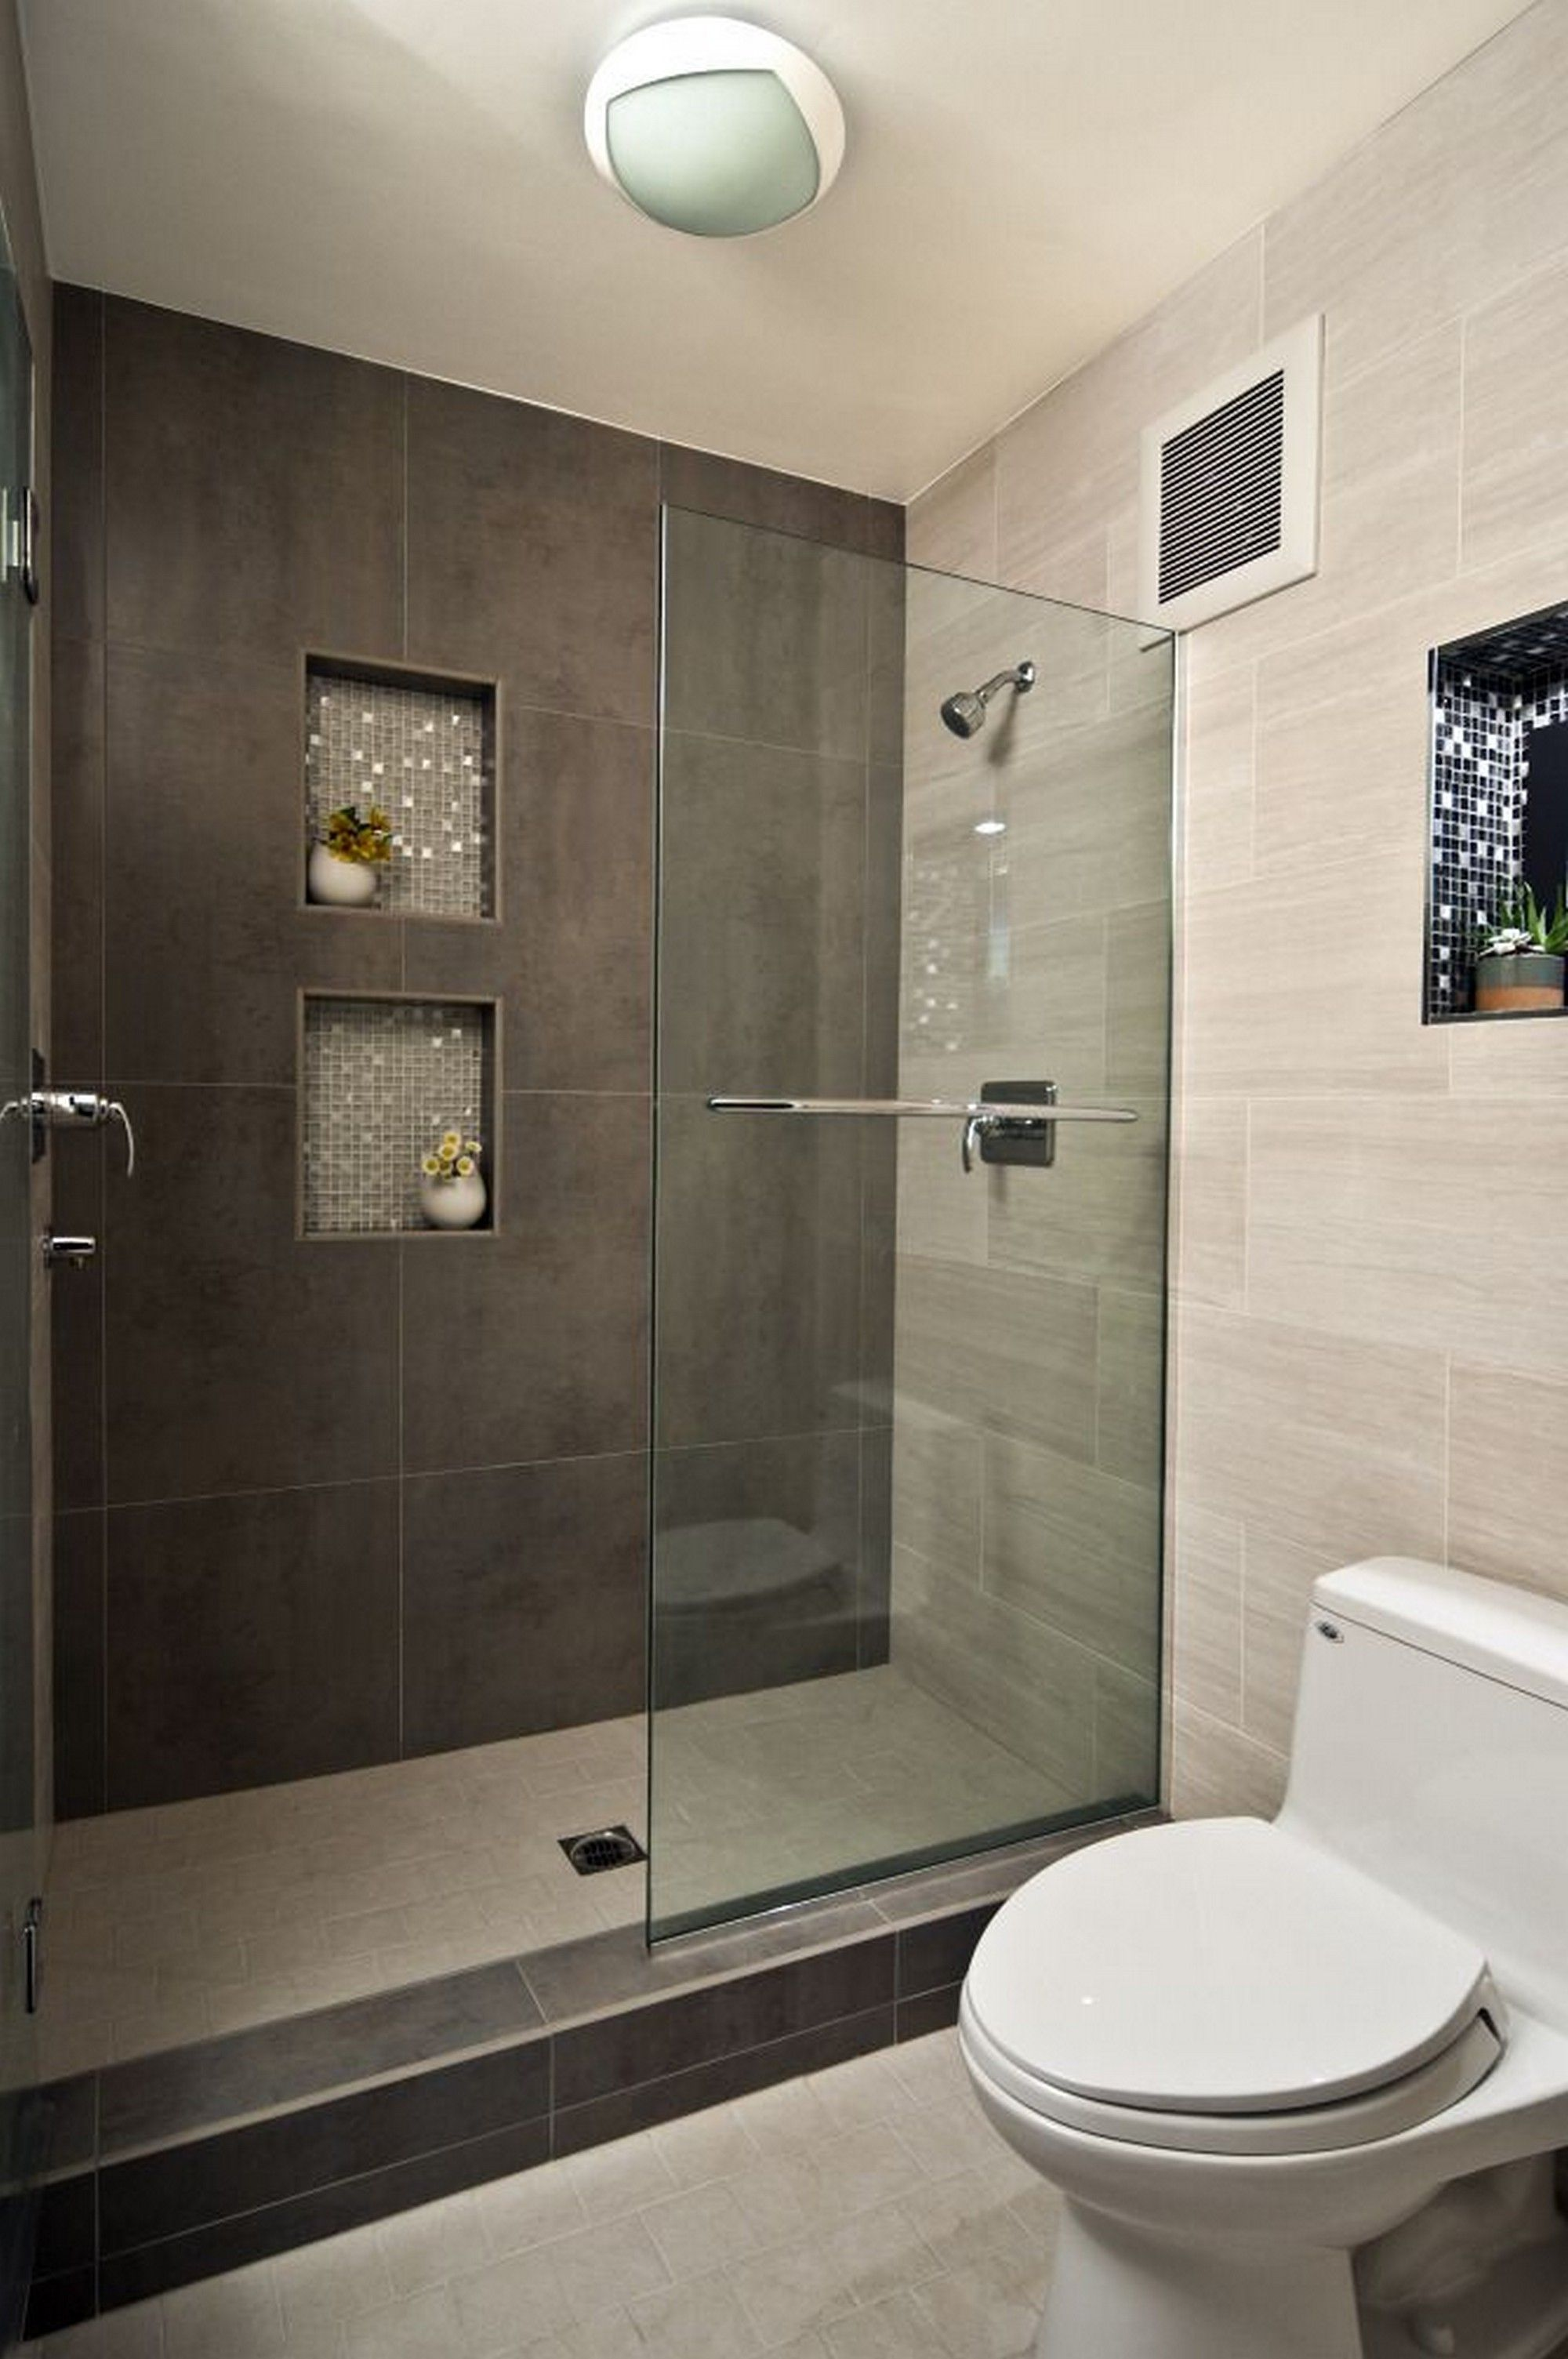 Badezimmer ideen braun hishers place to put toiletries half shower partition option